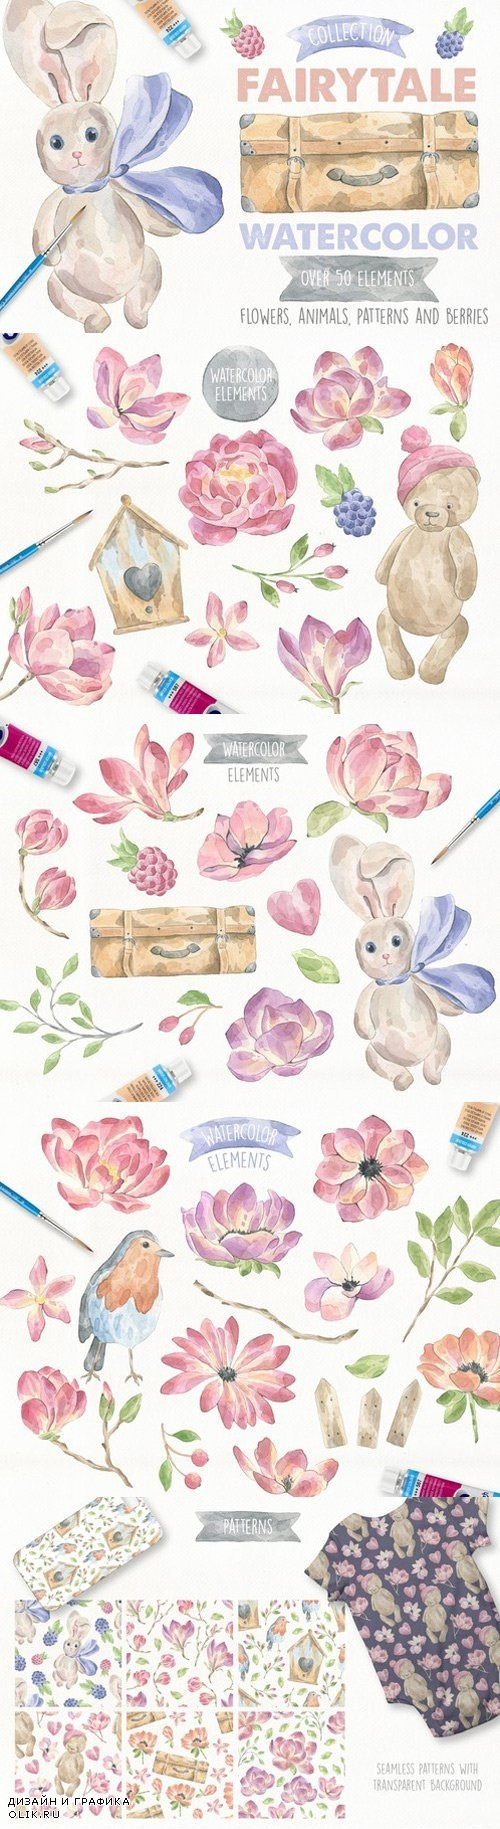 Fairytale Watercolor Collection - 825326